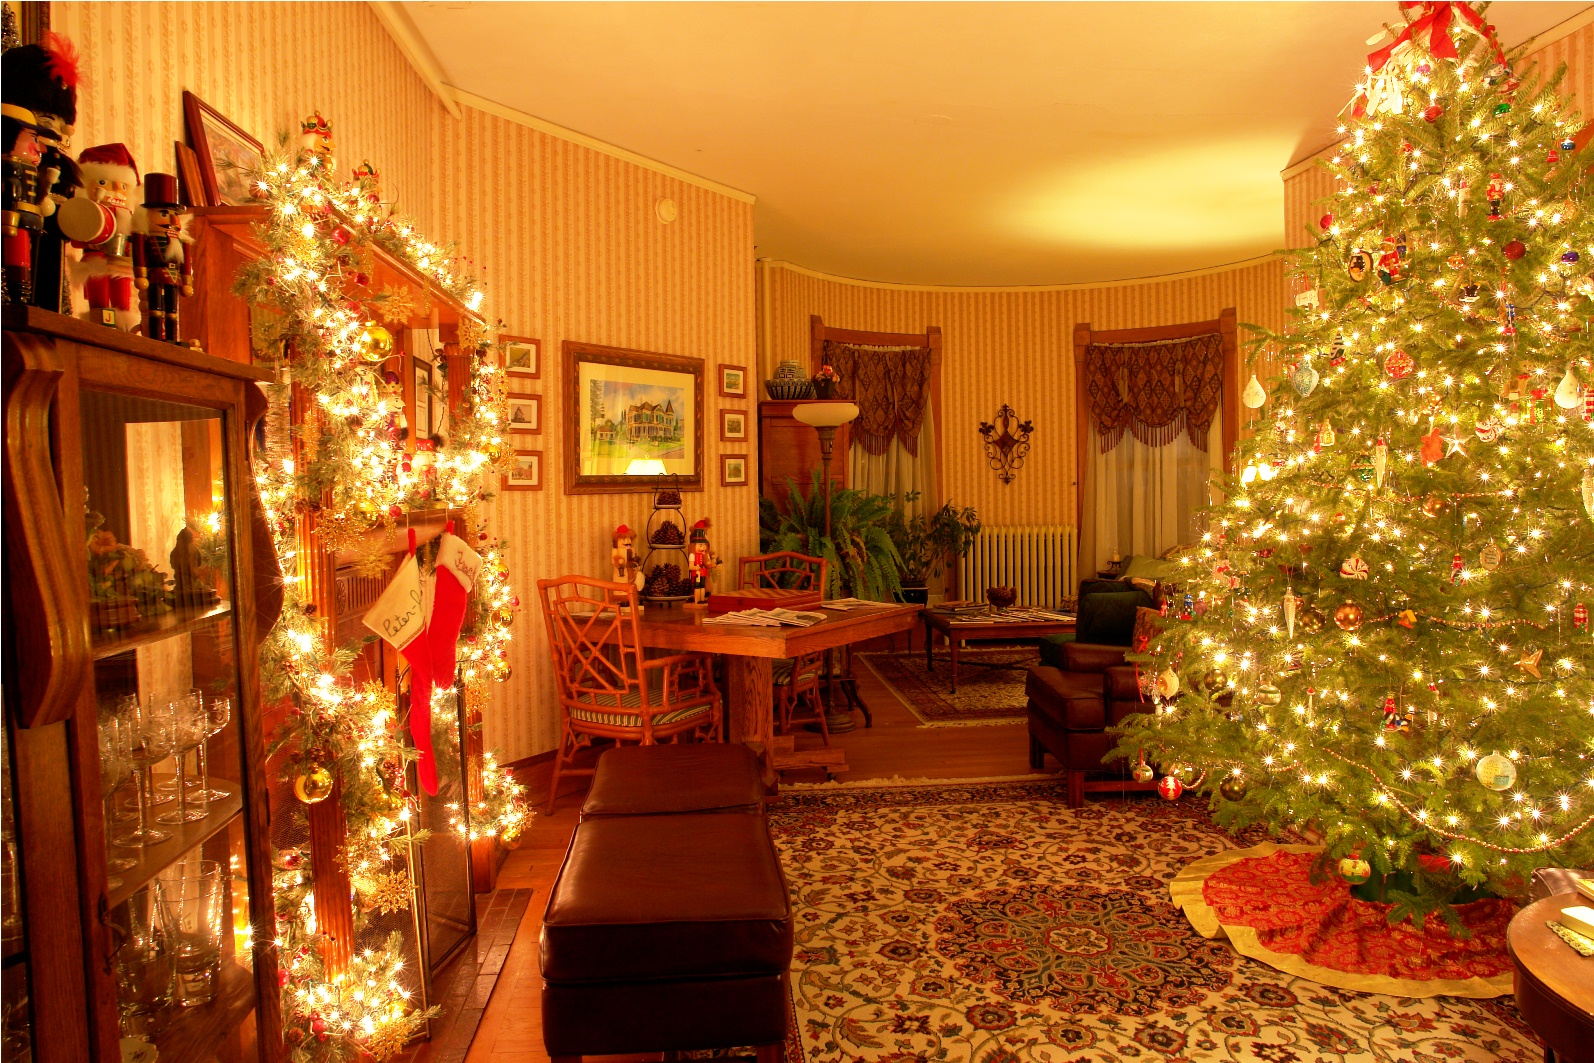 And the Parlor is aglow in warm light throughout the holidays. Credit: PJ Walter Photography.